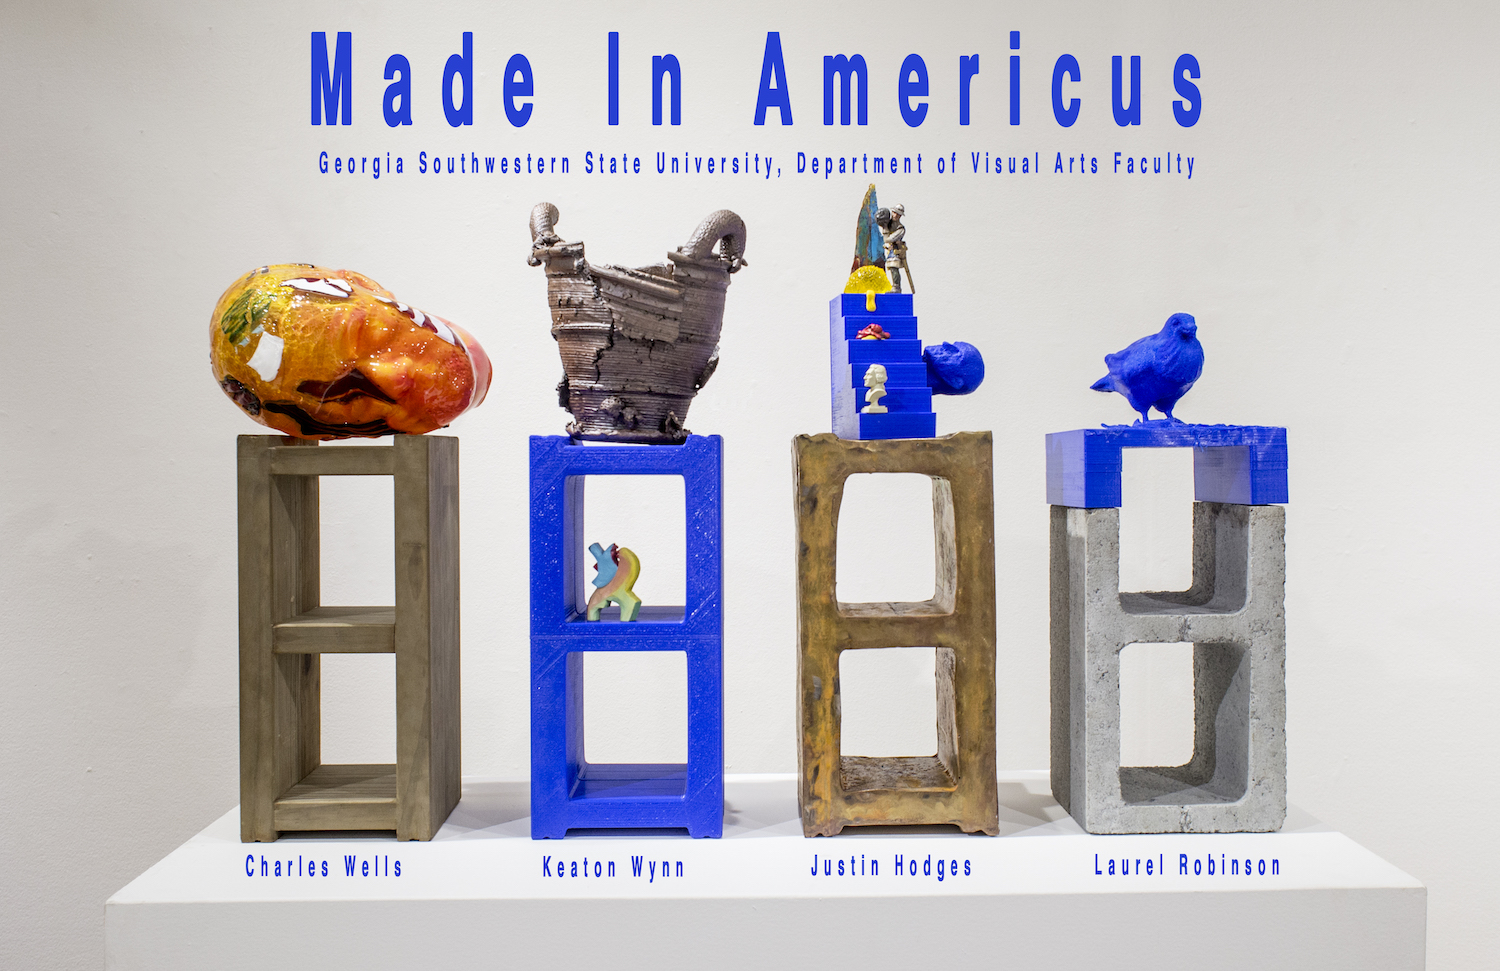 Made in Americus